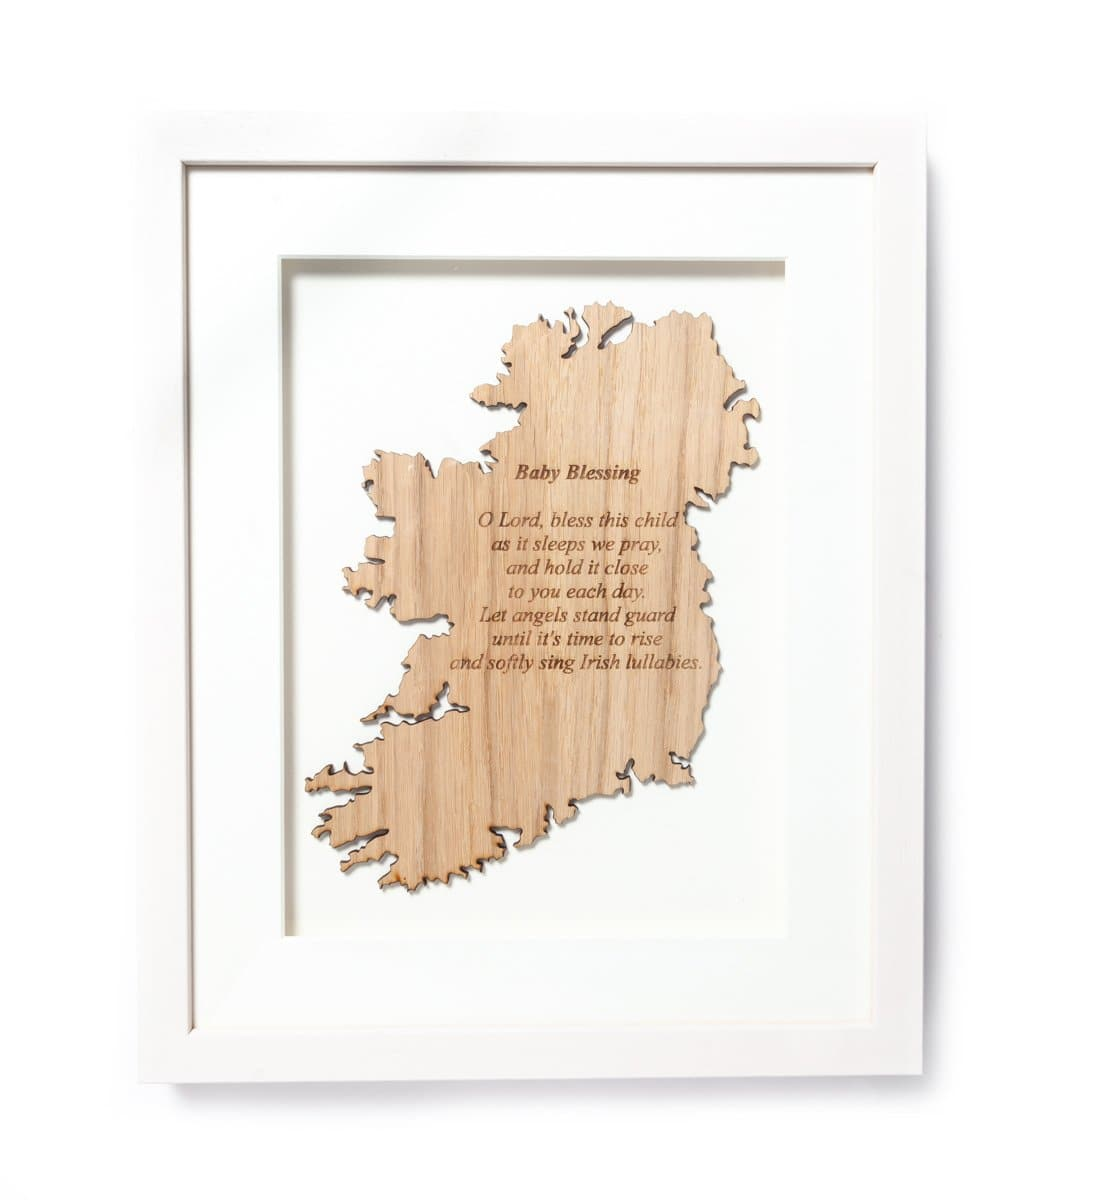 Irish Baby Blessing Wall Decor Made In Ireland Sustainable Irish Wood Large Framed Plaque Irish Blessing Made in Co. Meath by Caulfield Country Boards